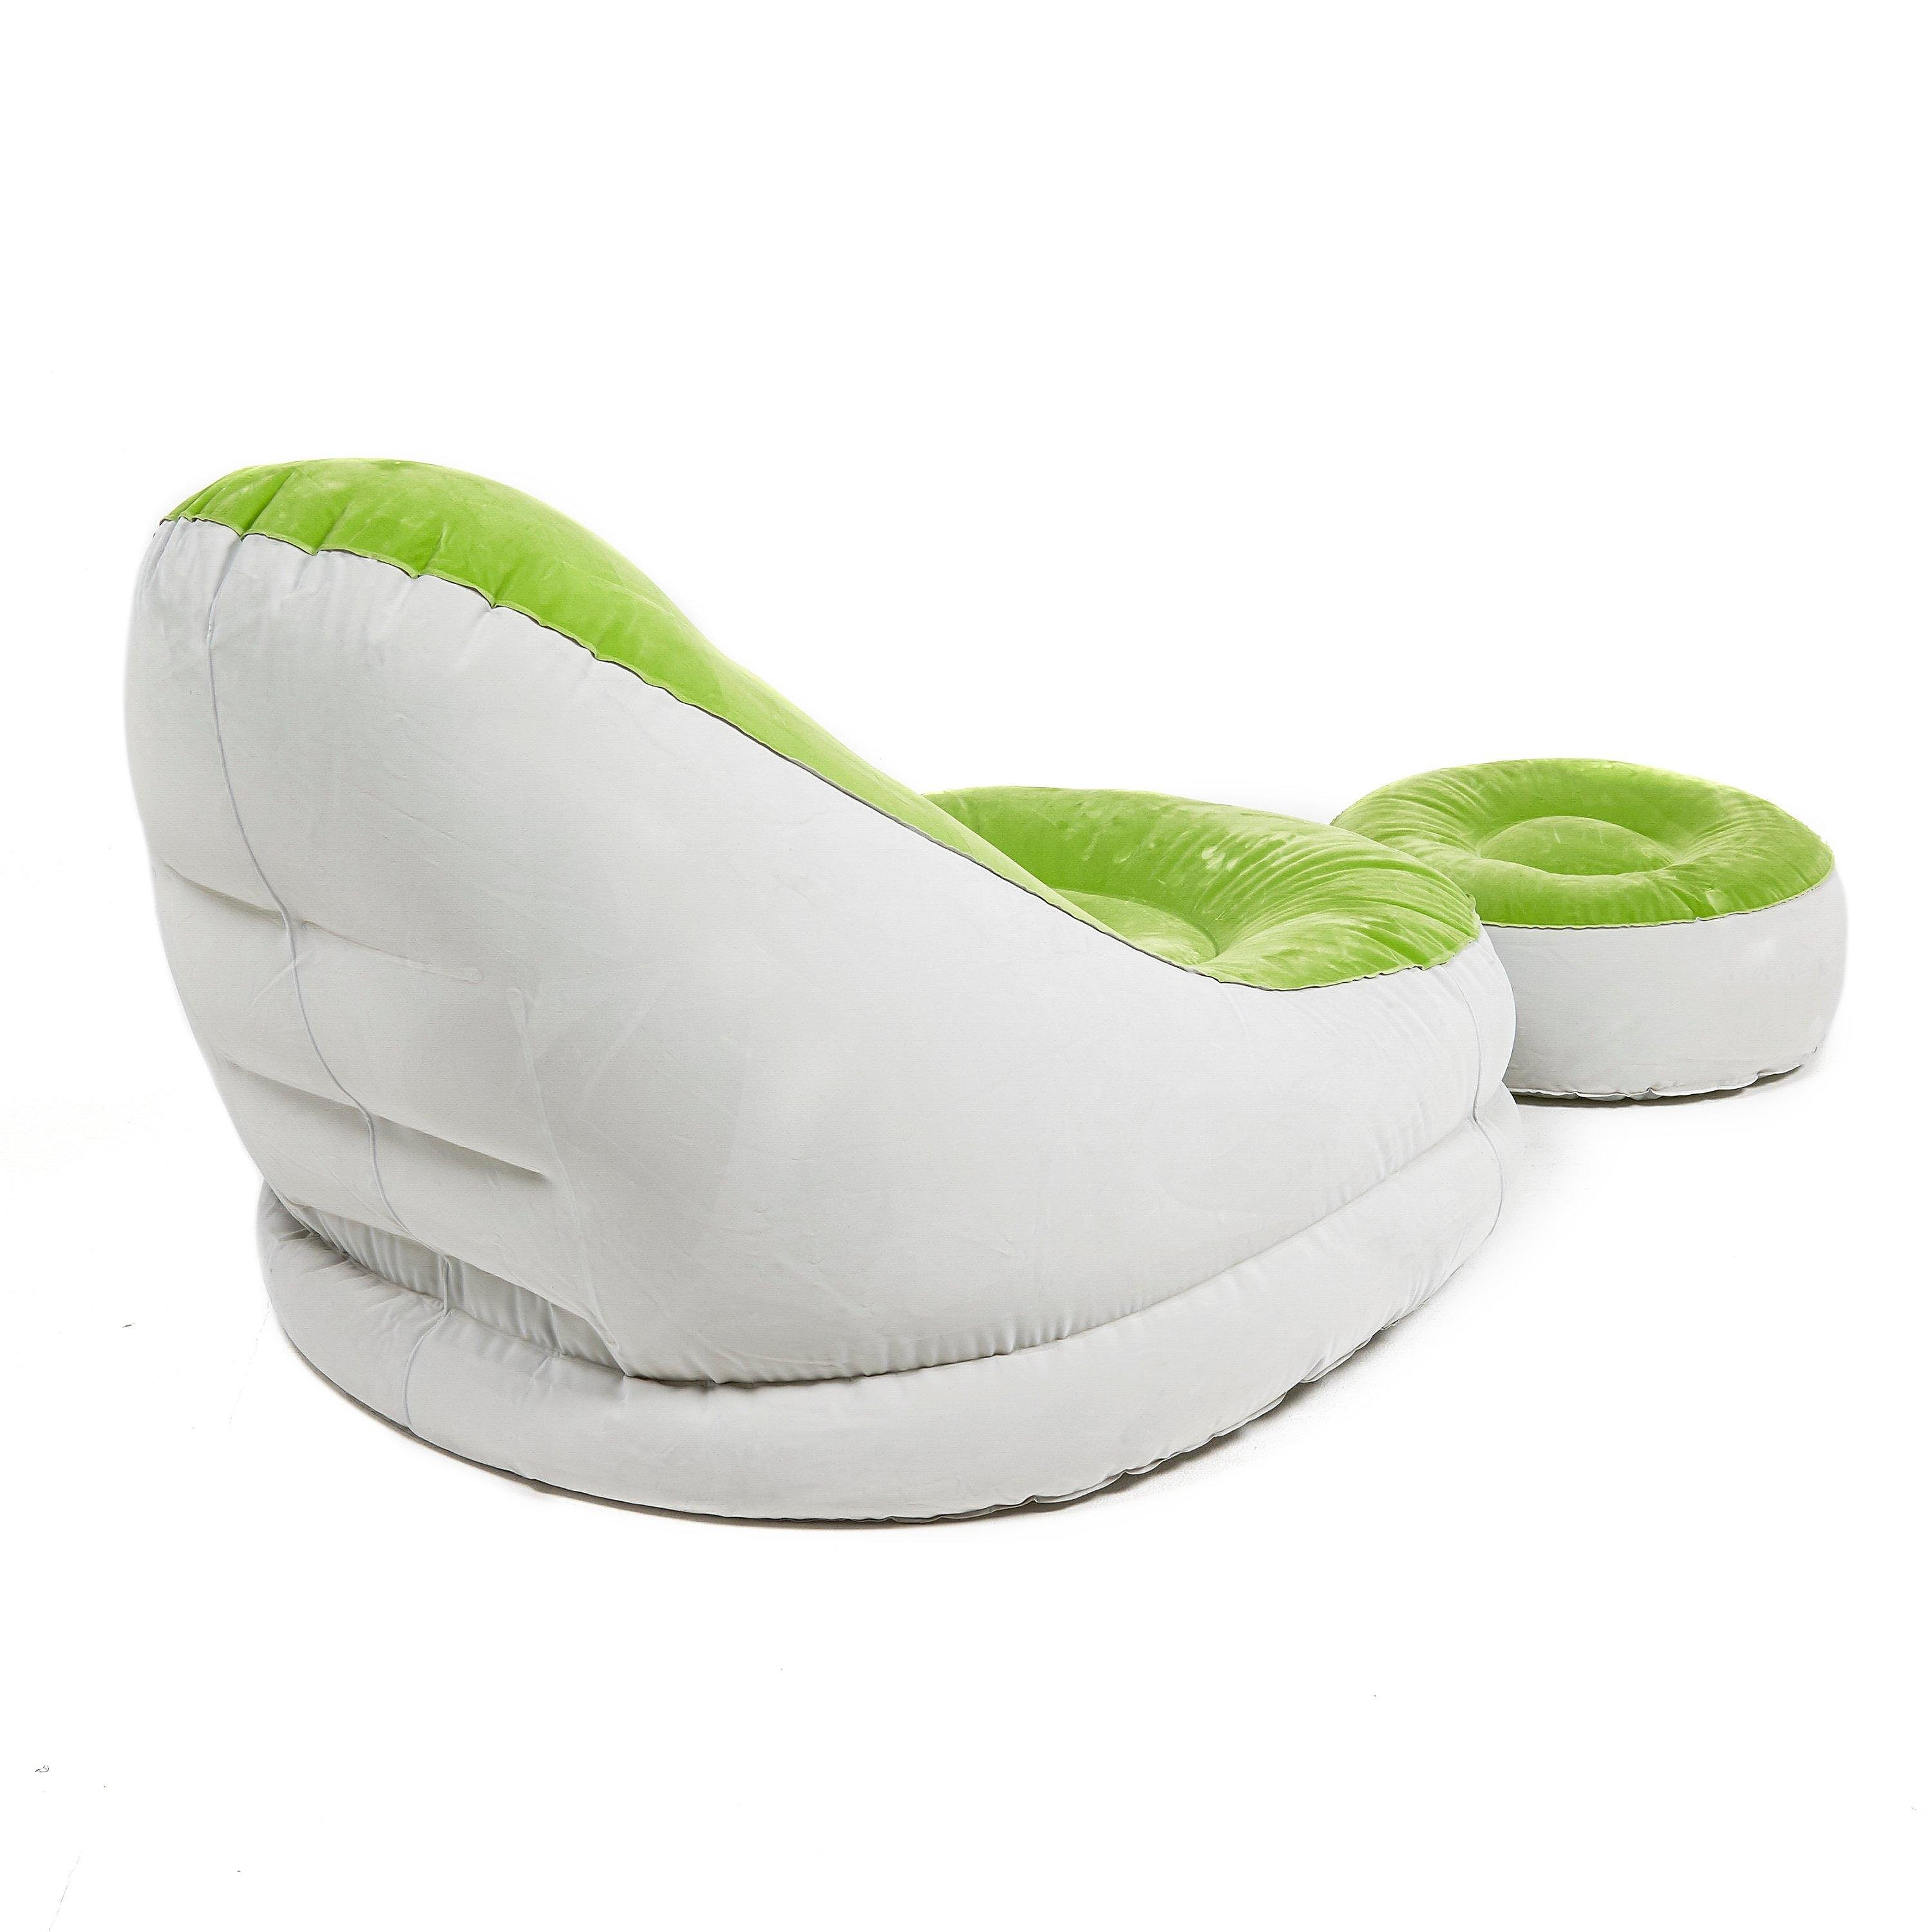 EUROHIKE  Inflatable Chair With Footstool